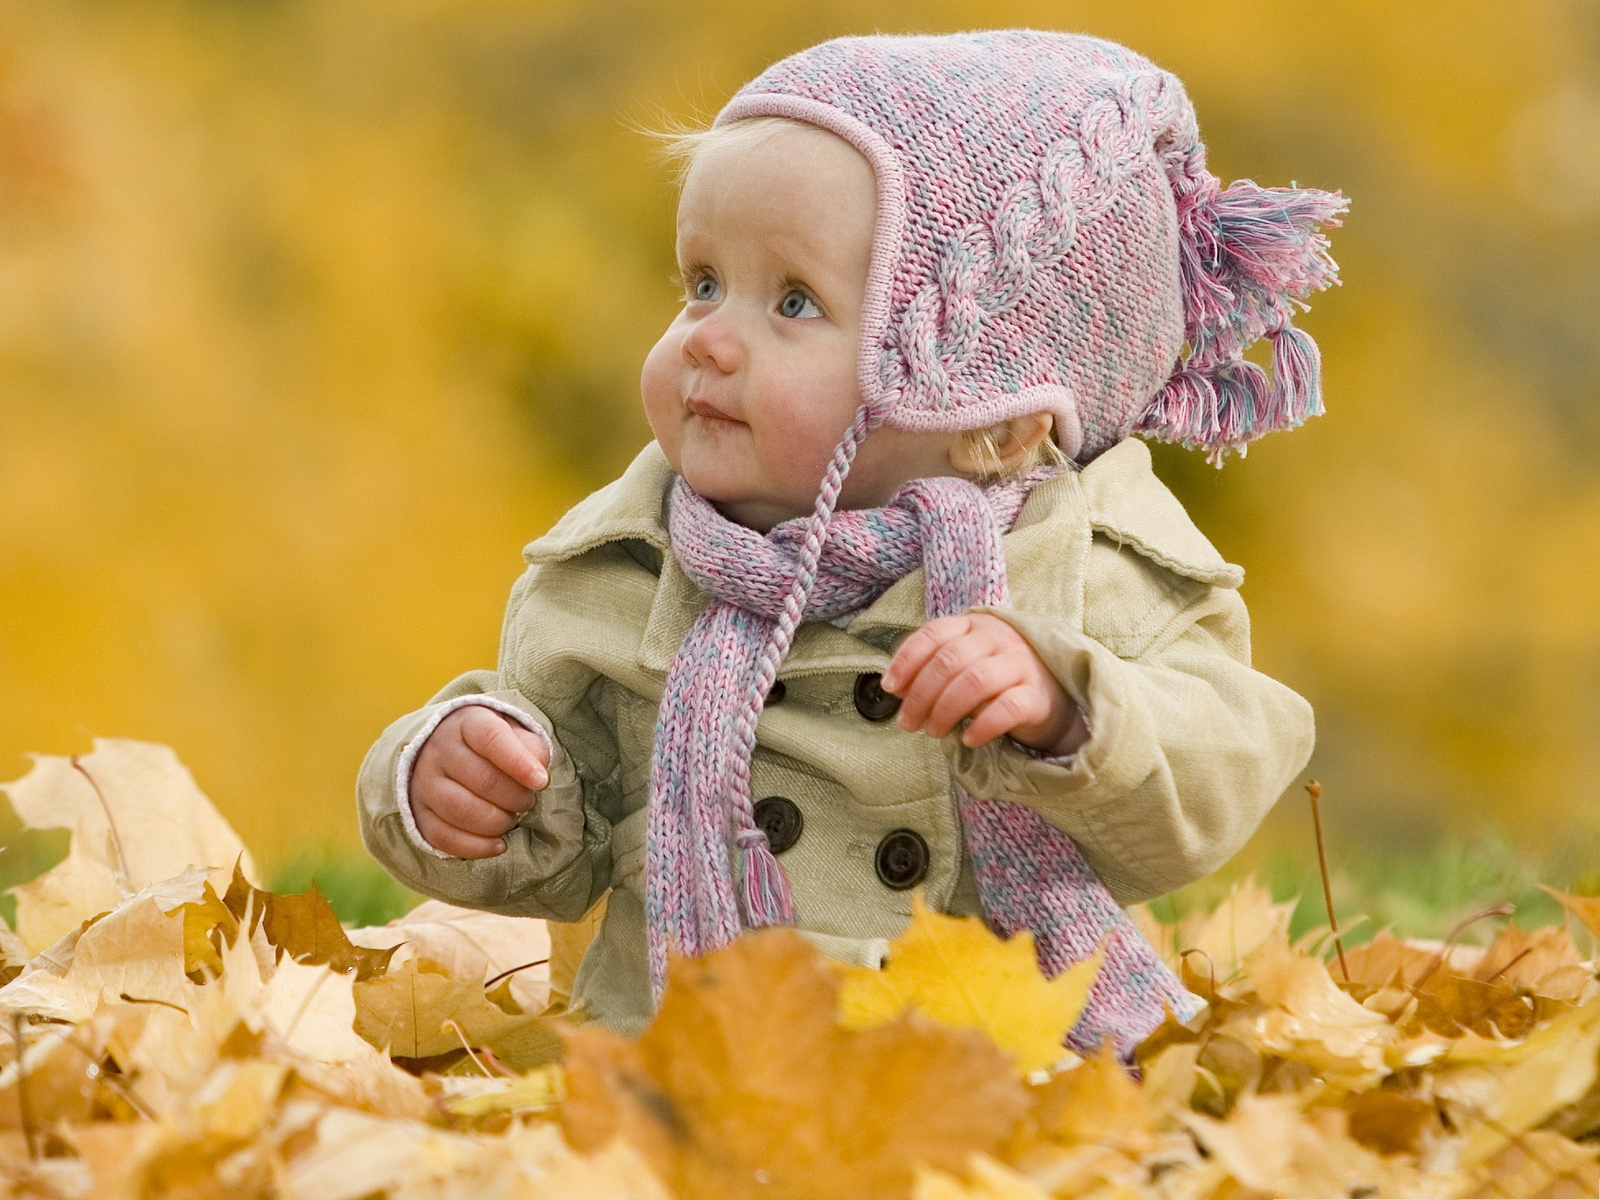 click to free download the wallpaper--Cute Baby Image, Adorable Baby Outdoor, Surrounded by Brown Leaves 1600X1200 free wallpaper download